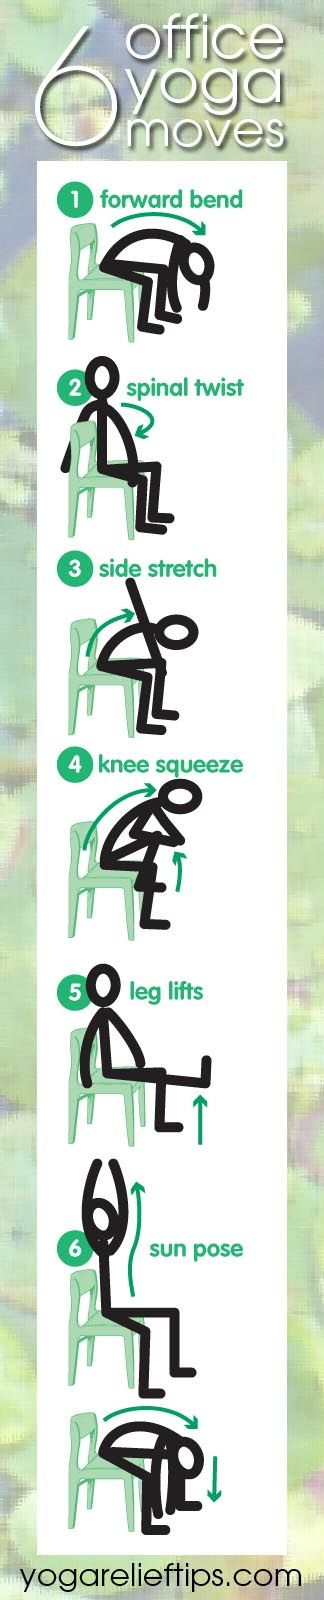 CHAIR YOGA - Gentle enough for seniors - add soft music, breathing exercises and additional poses